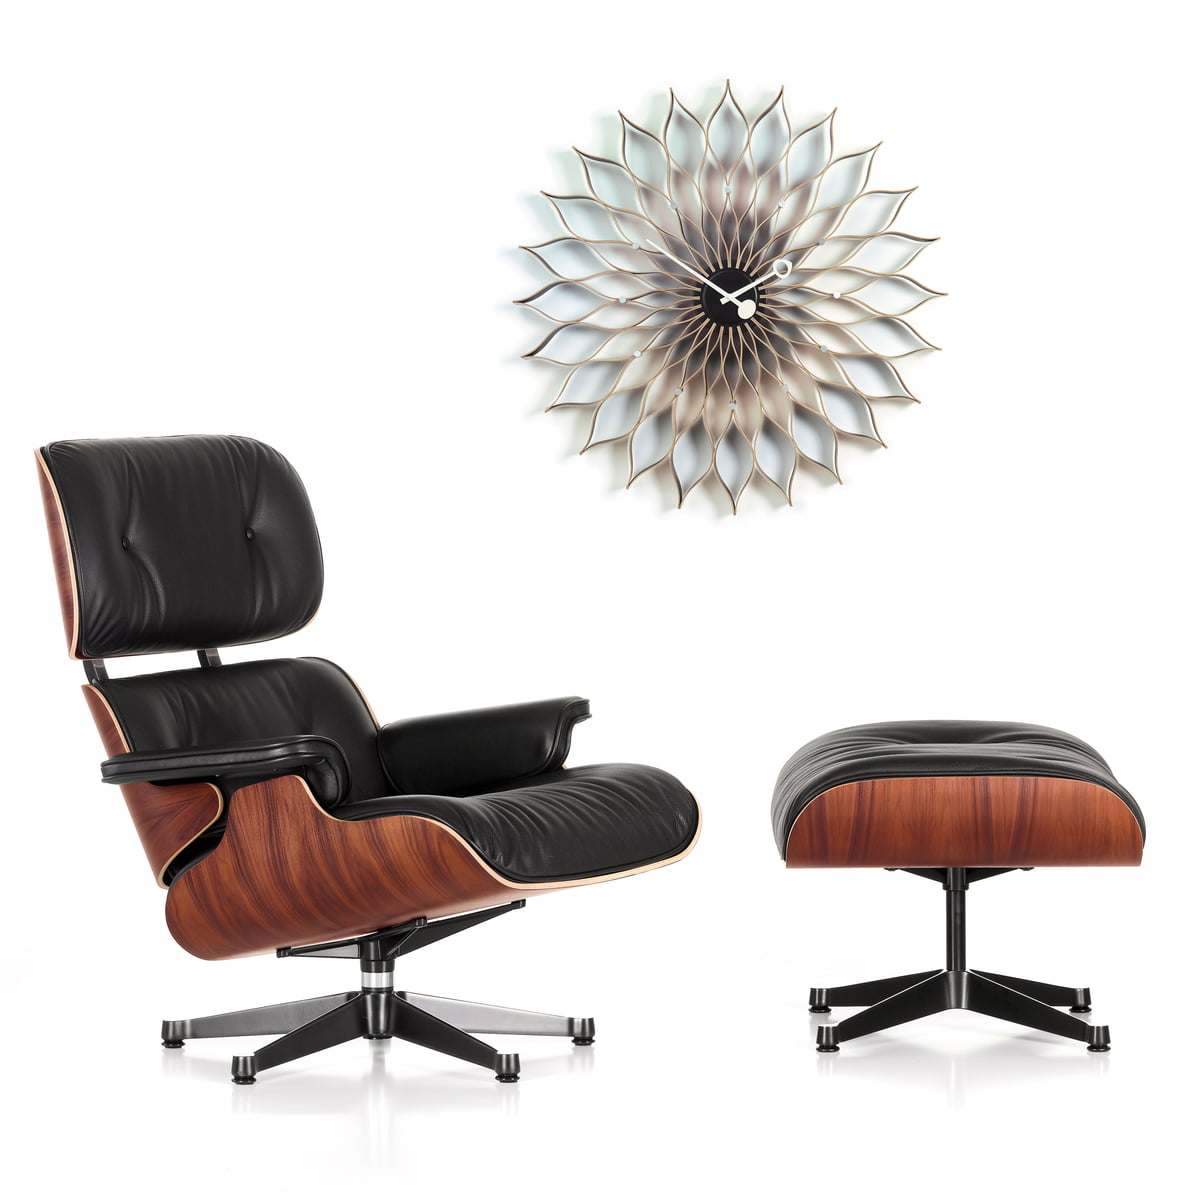 Sunflower von vitra im shop for Vitra lounge chair nachbau